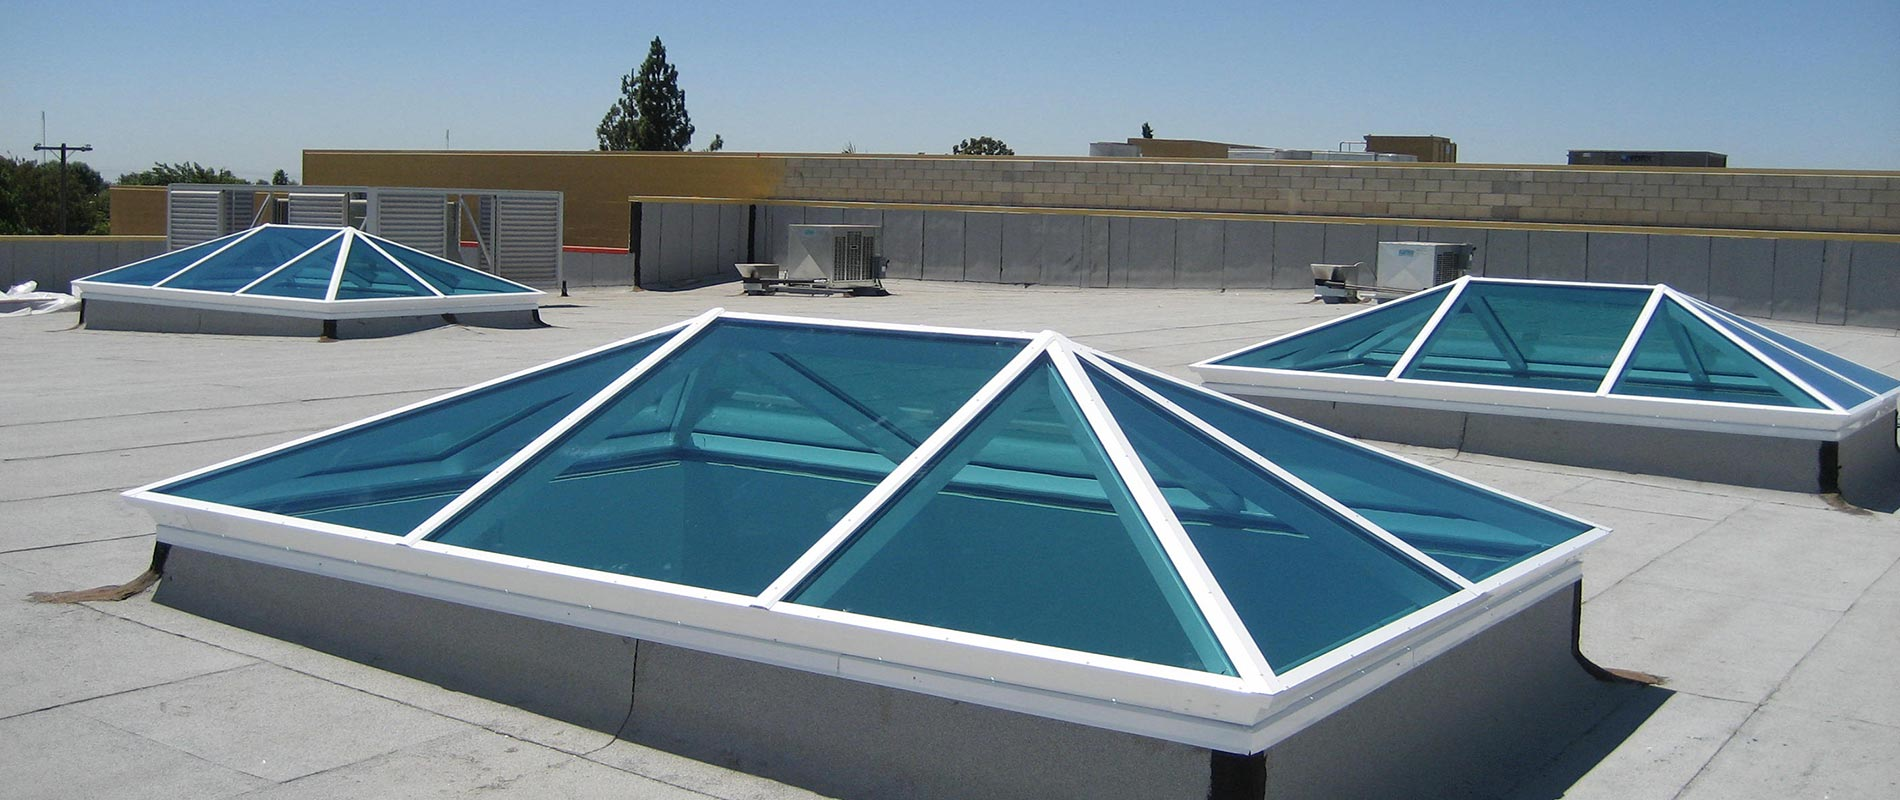 Lane Aire Manufacturer Of Skylights And Roof Hatches